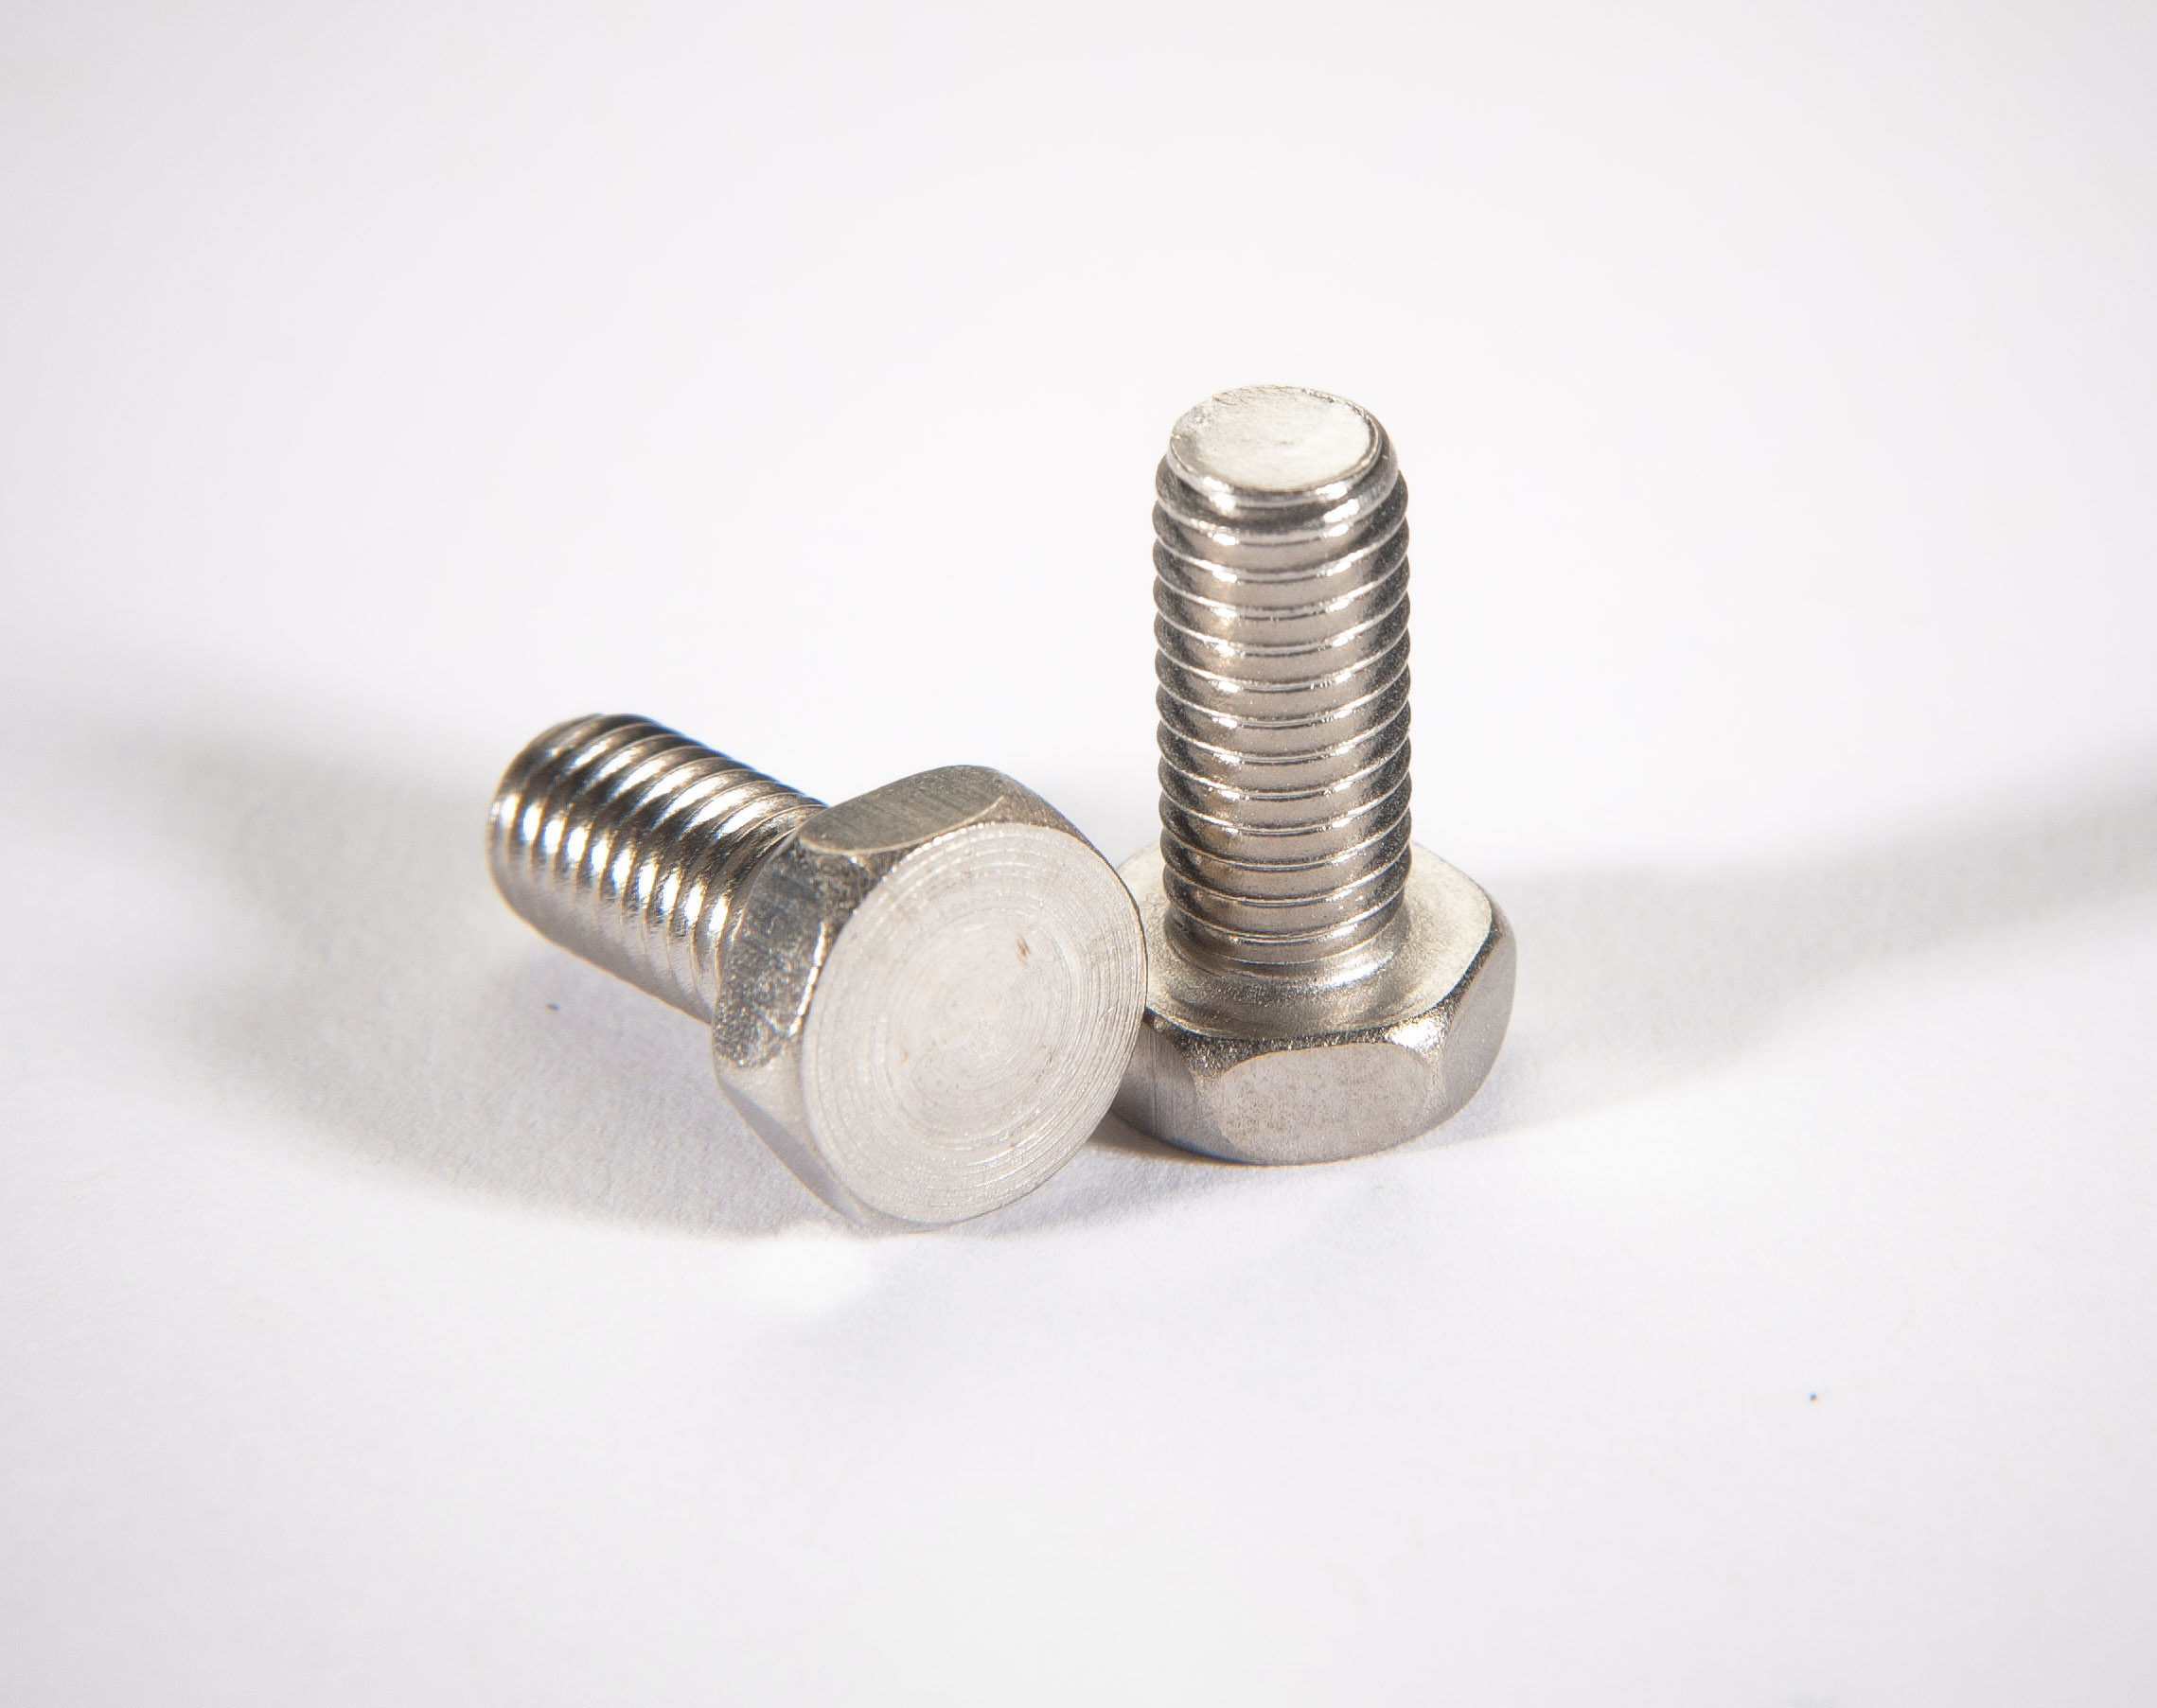 Metric non-vented hex head screw DIN933, WS2 coated, M8 x 60mm